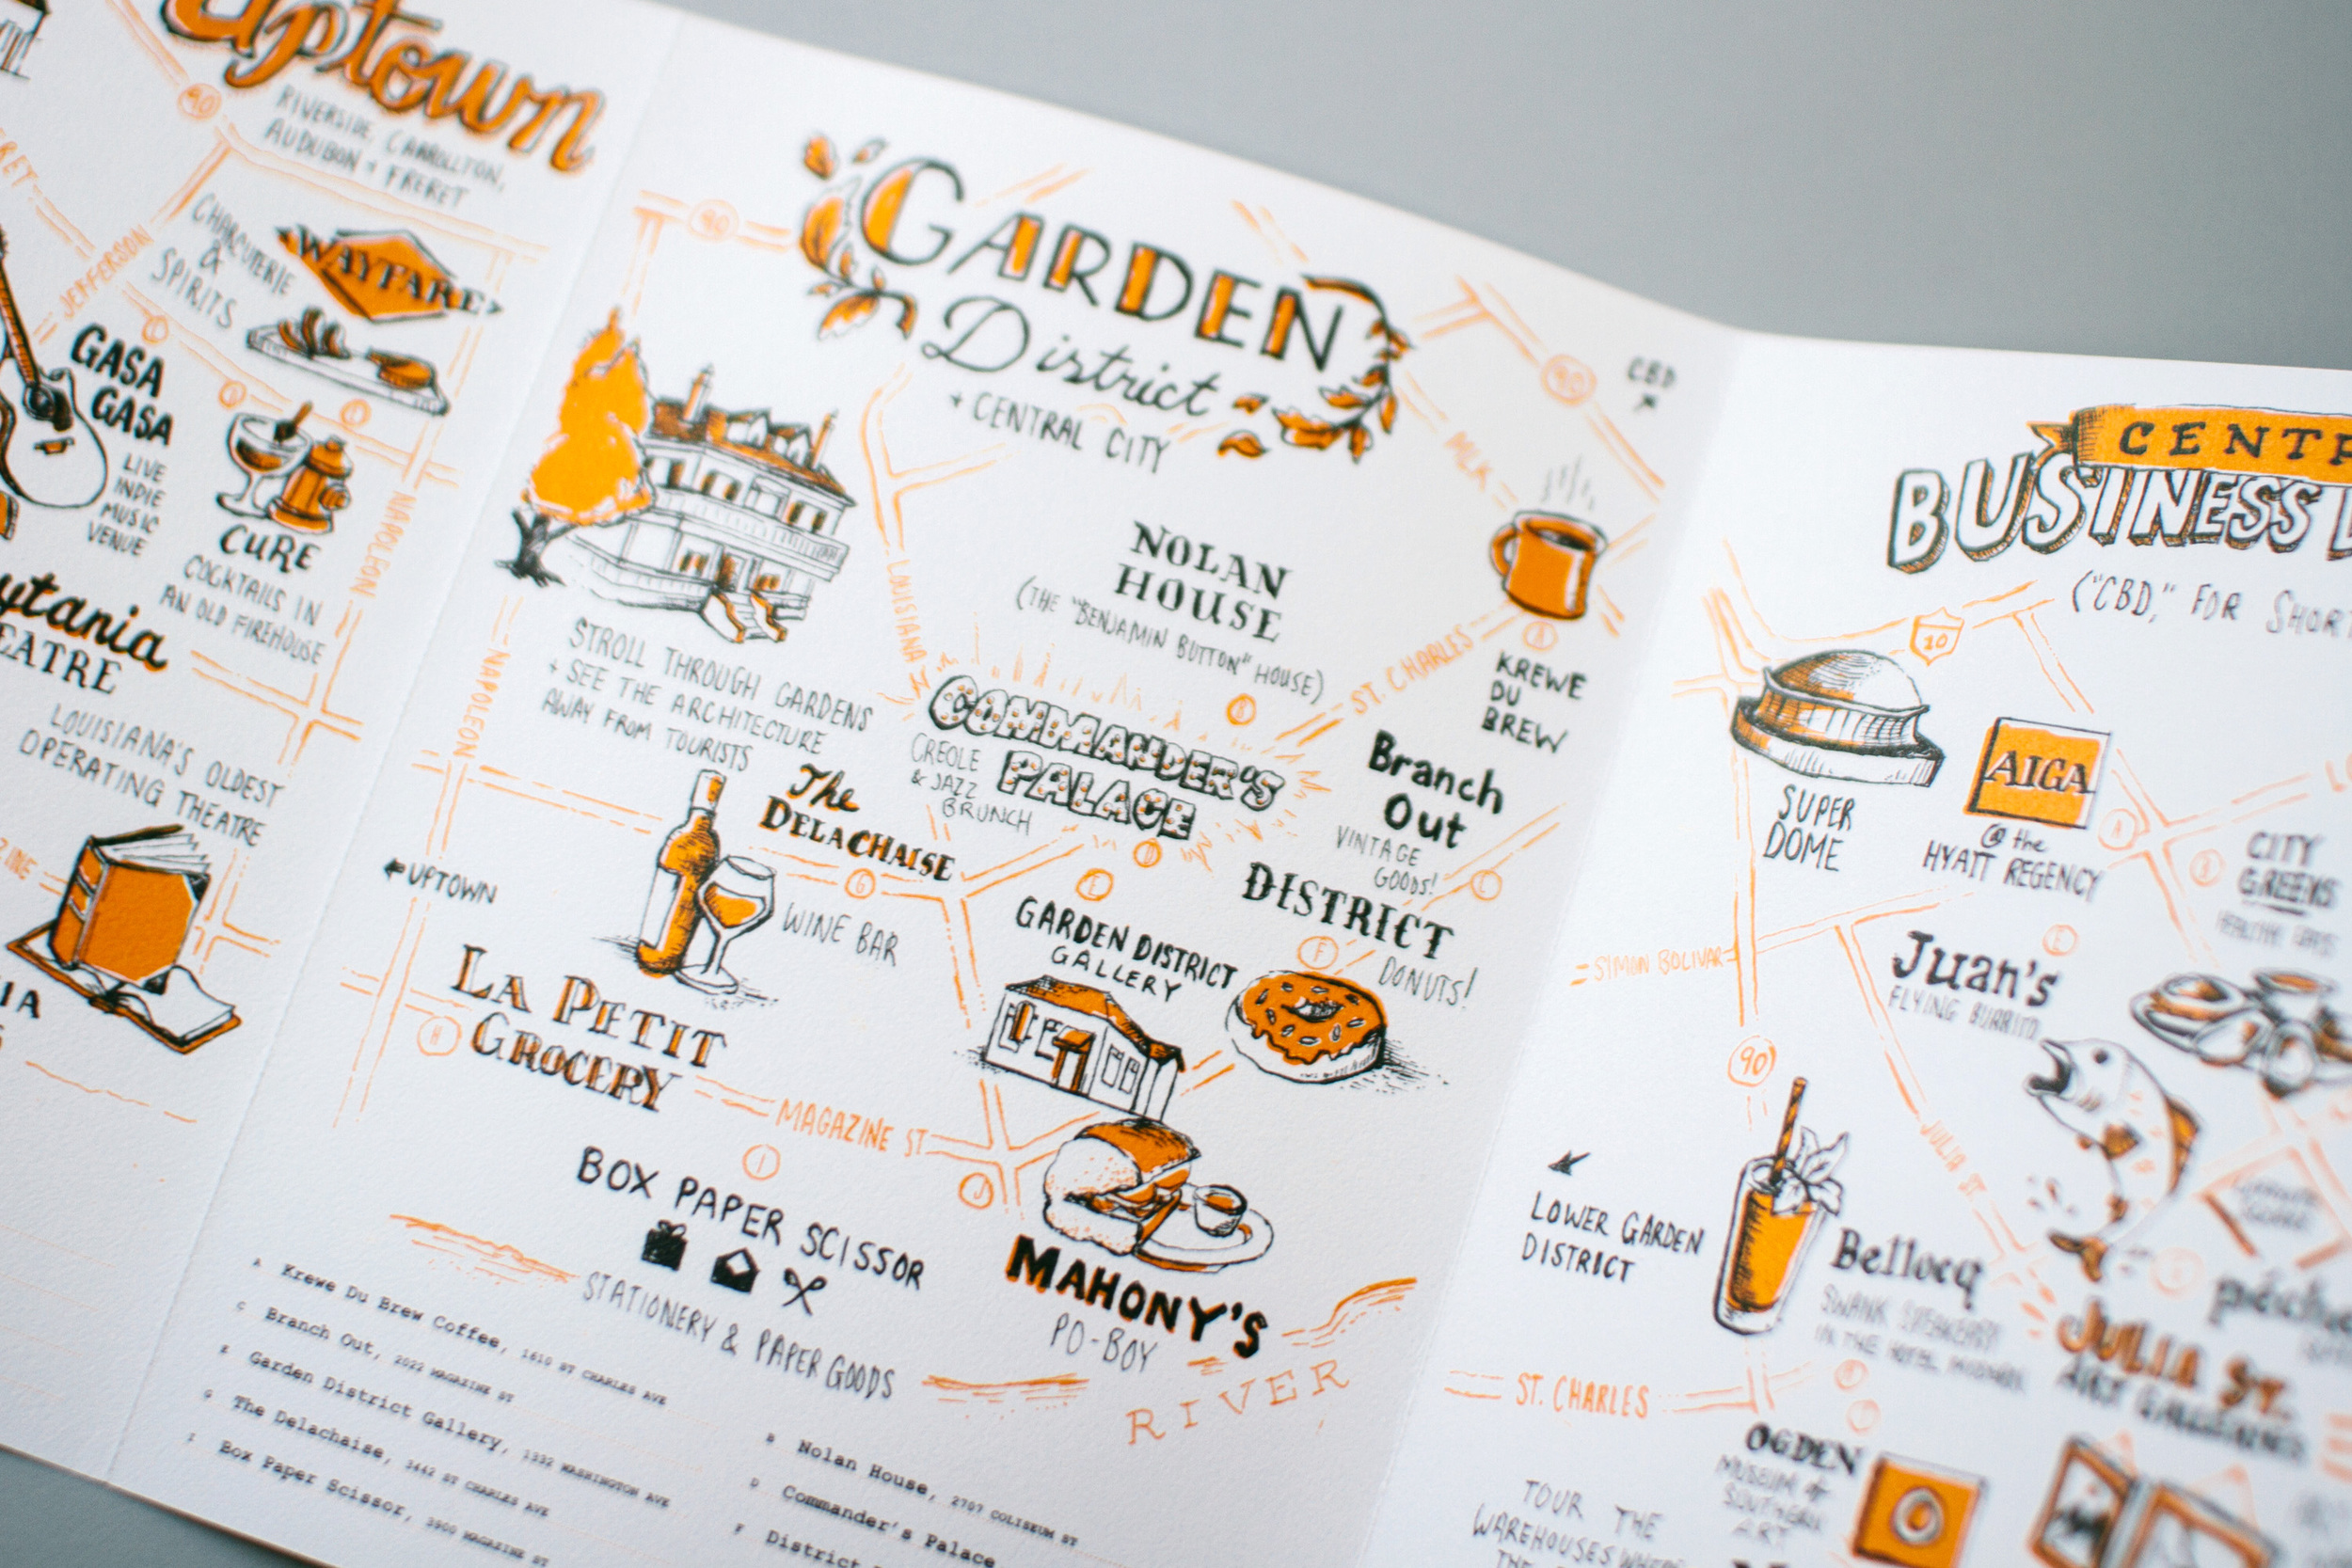 Up close detail of the Garden District illustrated map